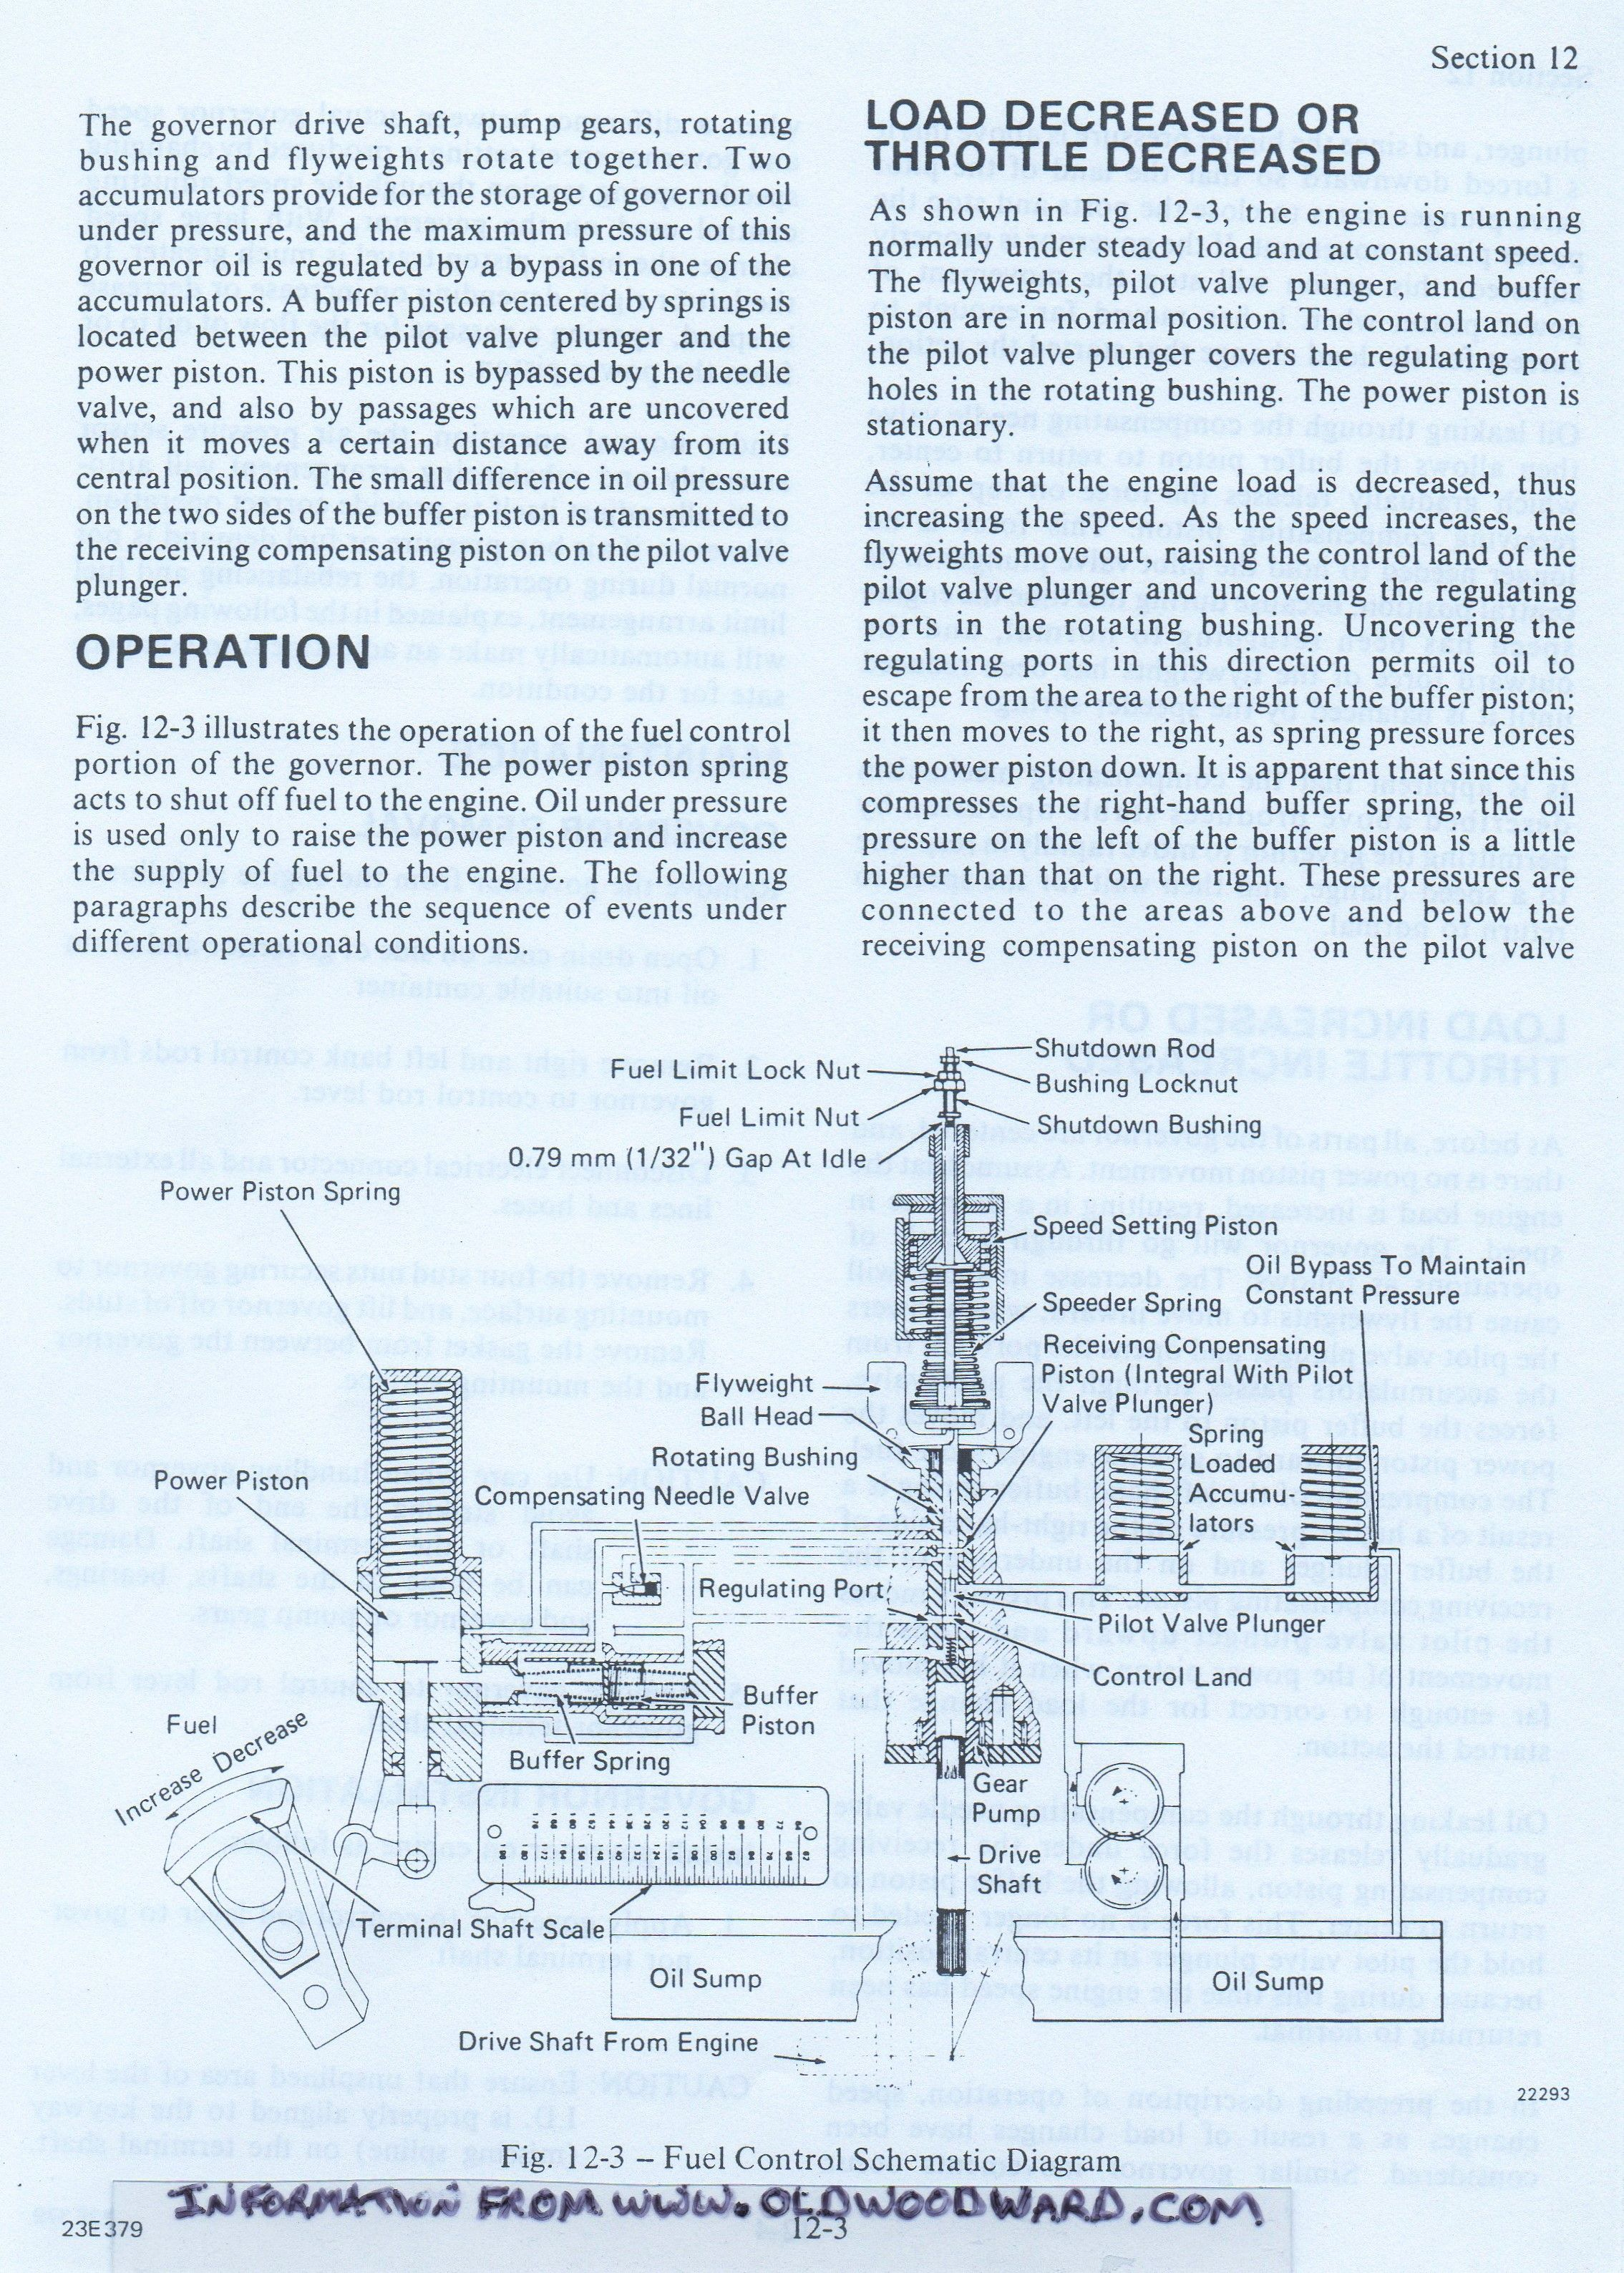 schematic drawing woodward governor electric locomotive diesel engine engineering [ 2269 x 3175 Pixel ]